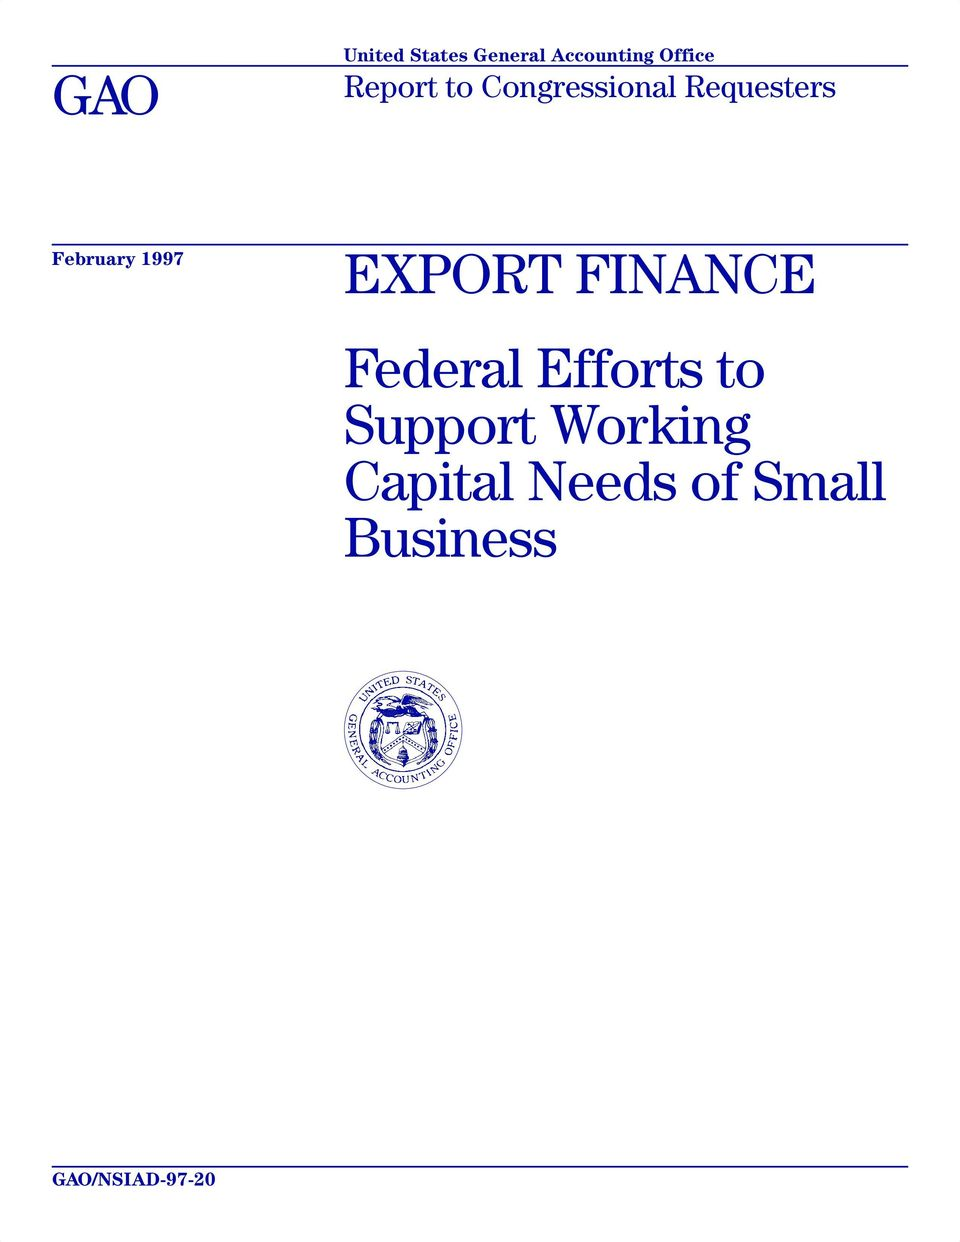 1997 EXPORT FINANCE Federal Efforts to Support